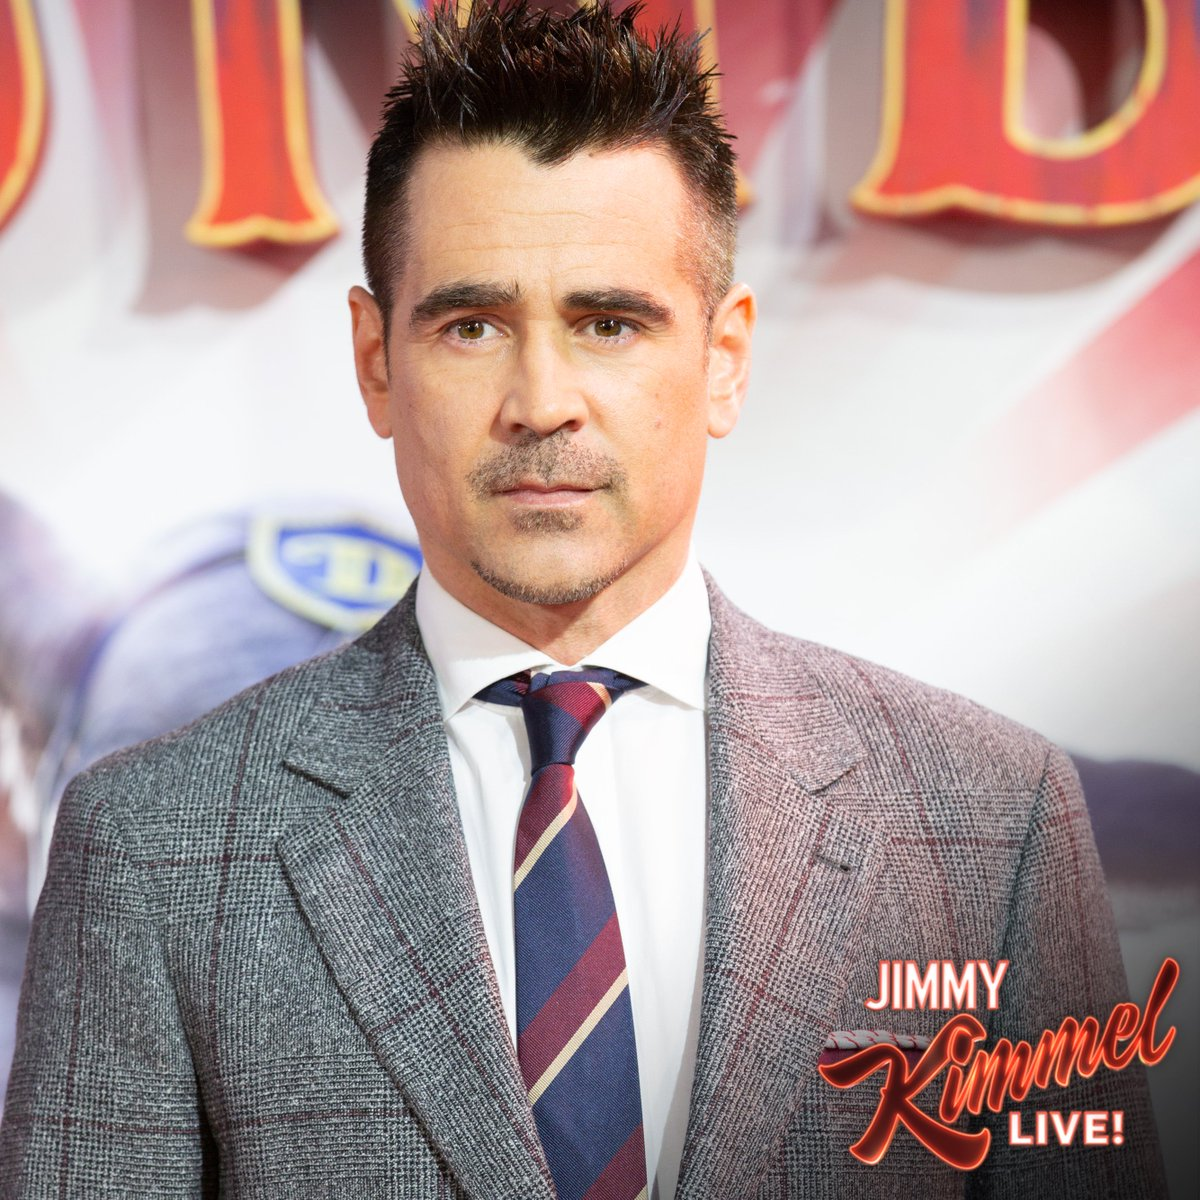 RT @Dumbo: Tune in to @JimmyKimmelLive tonight at 11:35 |10:35c to see Colin Farrell, star of #Dumbo! https://t.co/nUkDvRZQFi